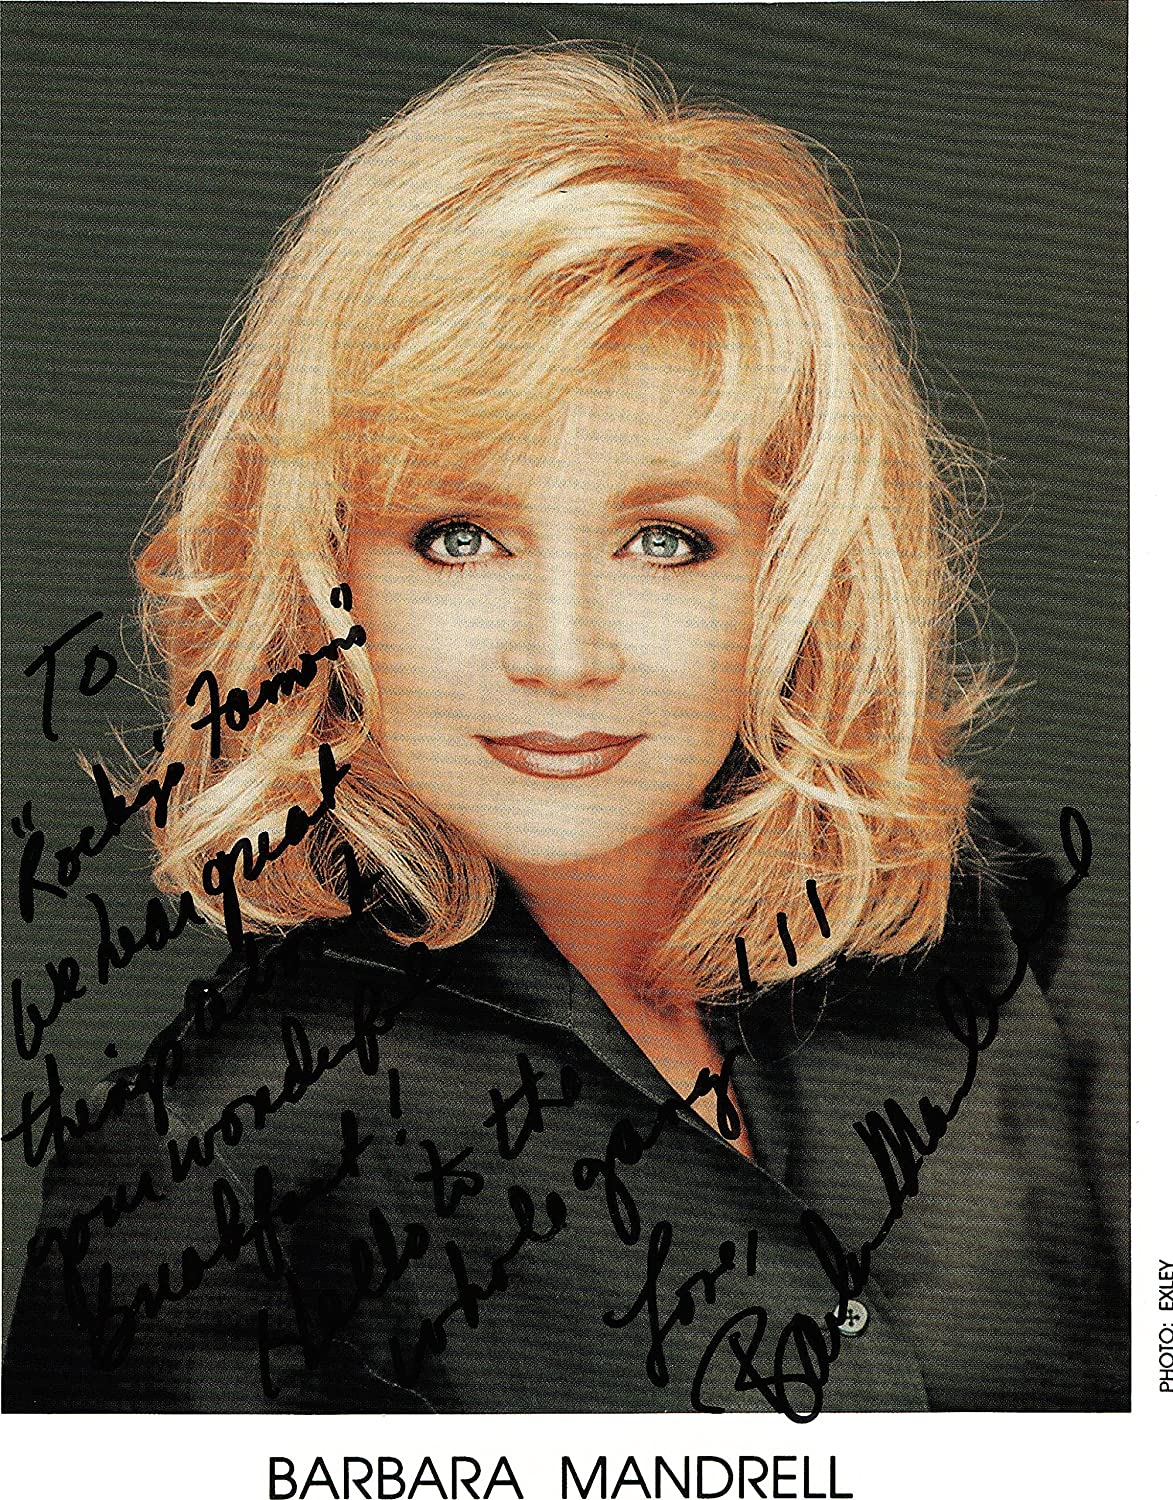 Discussion on this topic: Jeanne Carmen, barbara-mandrell/